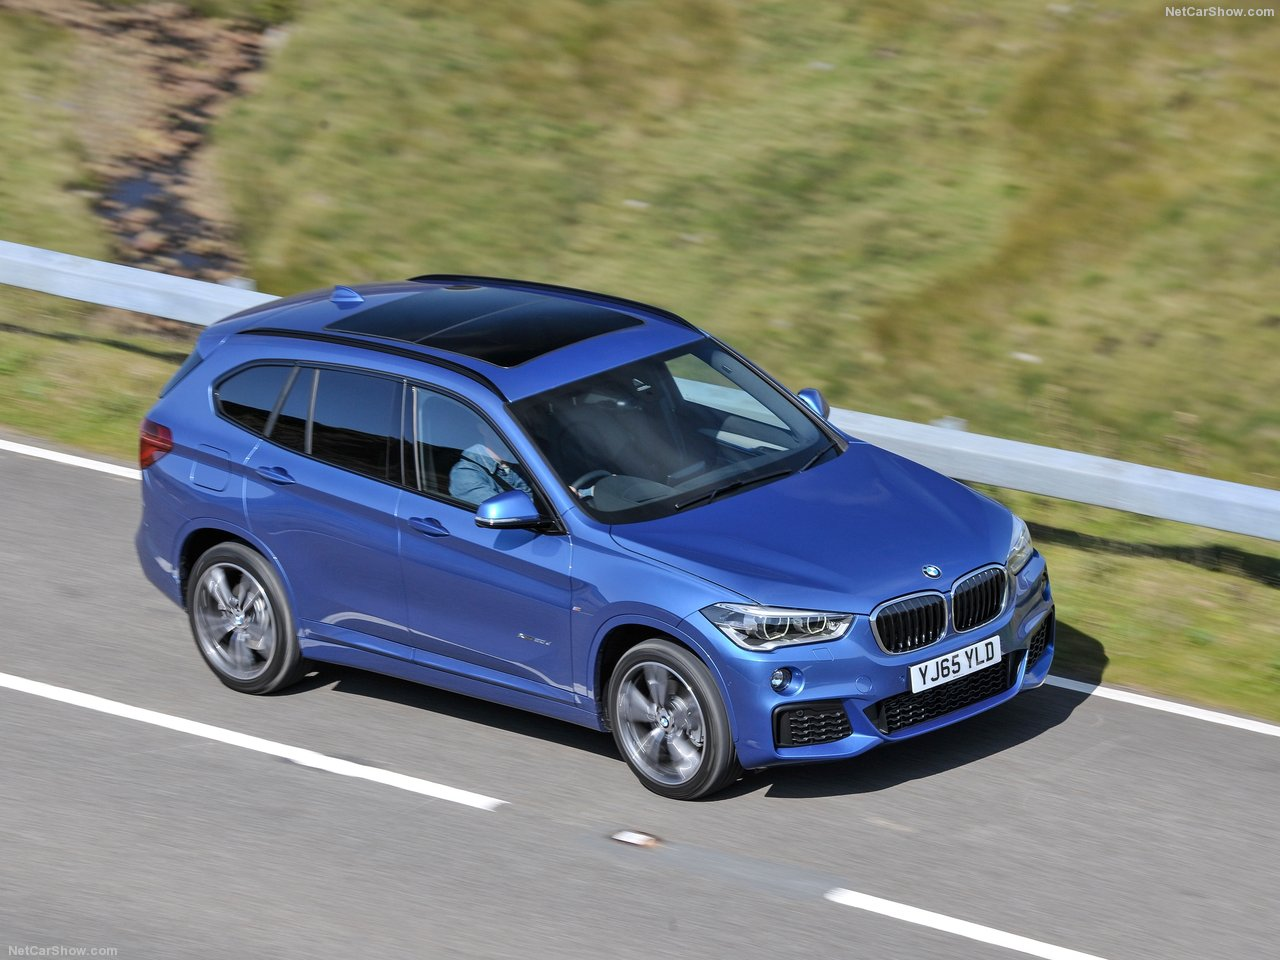 BMW-X1_UK-Version-2016-1280-30.jpg